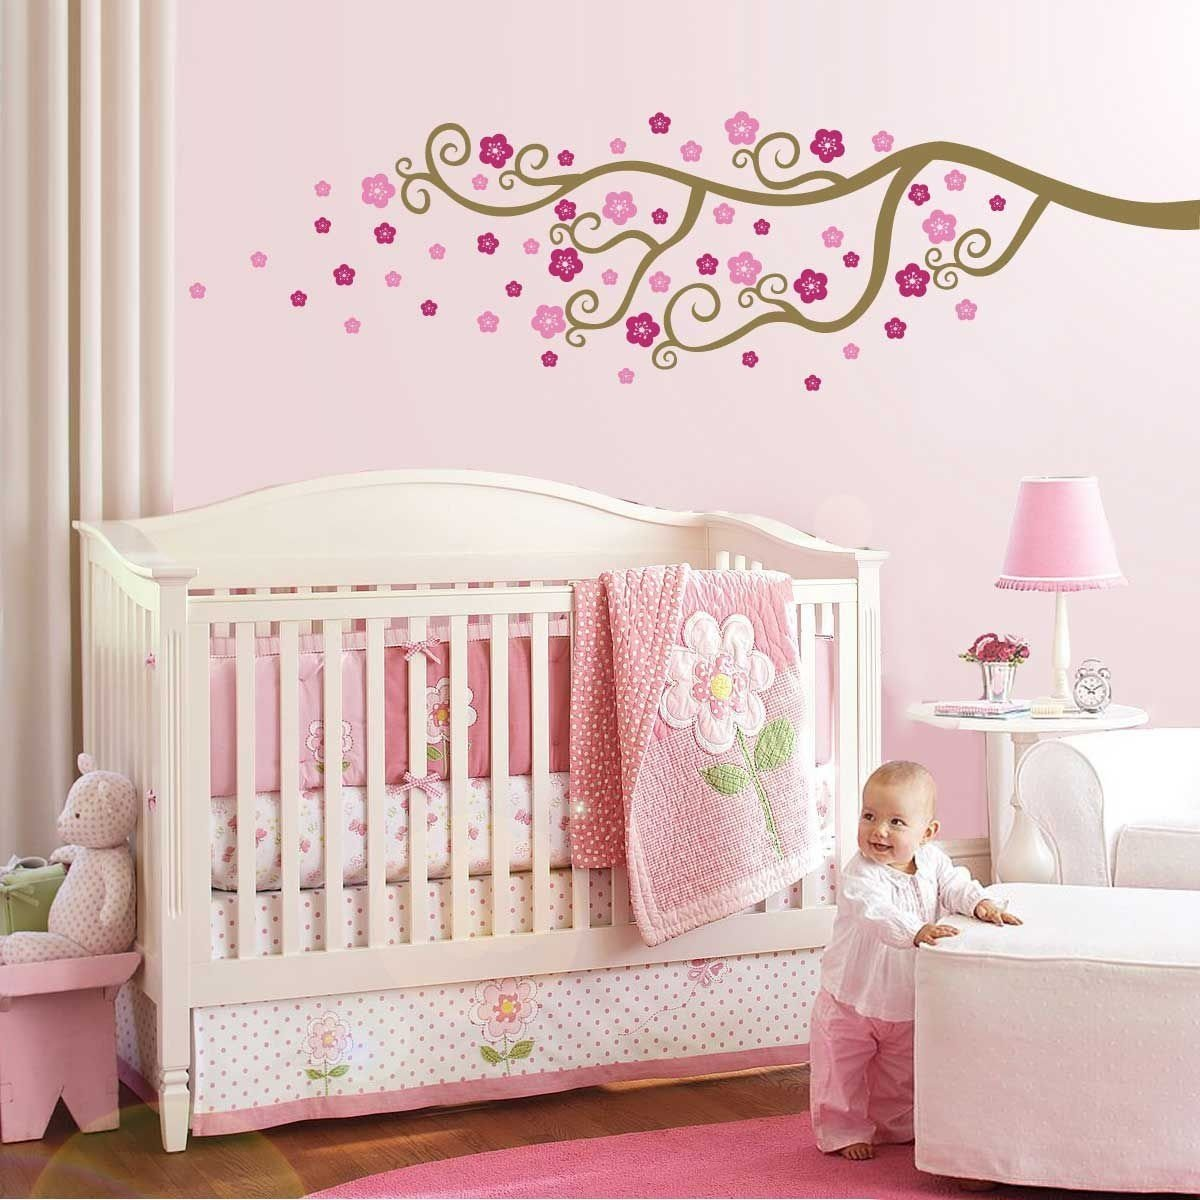 baby room decorating ideas on a budget | decoration for home